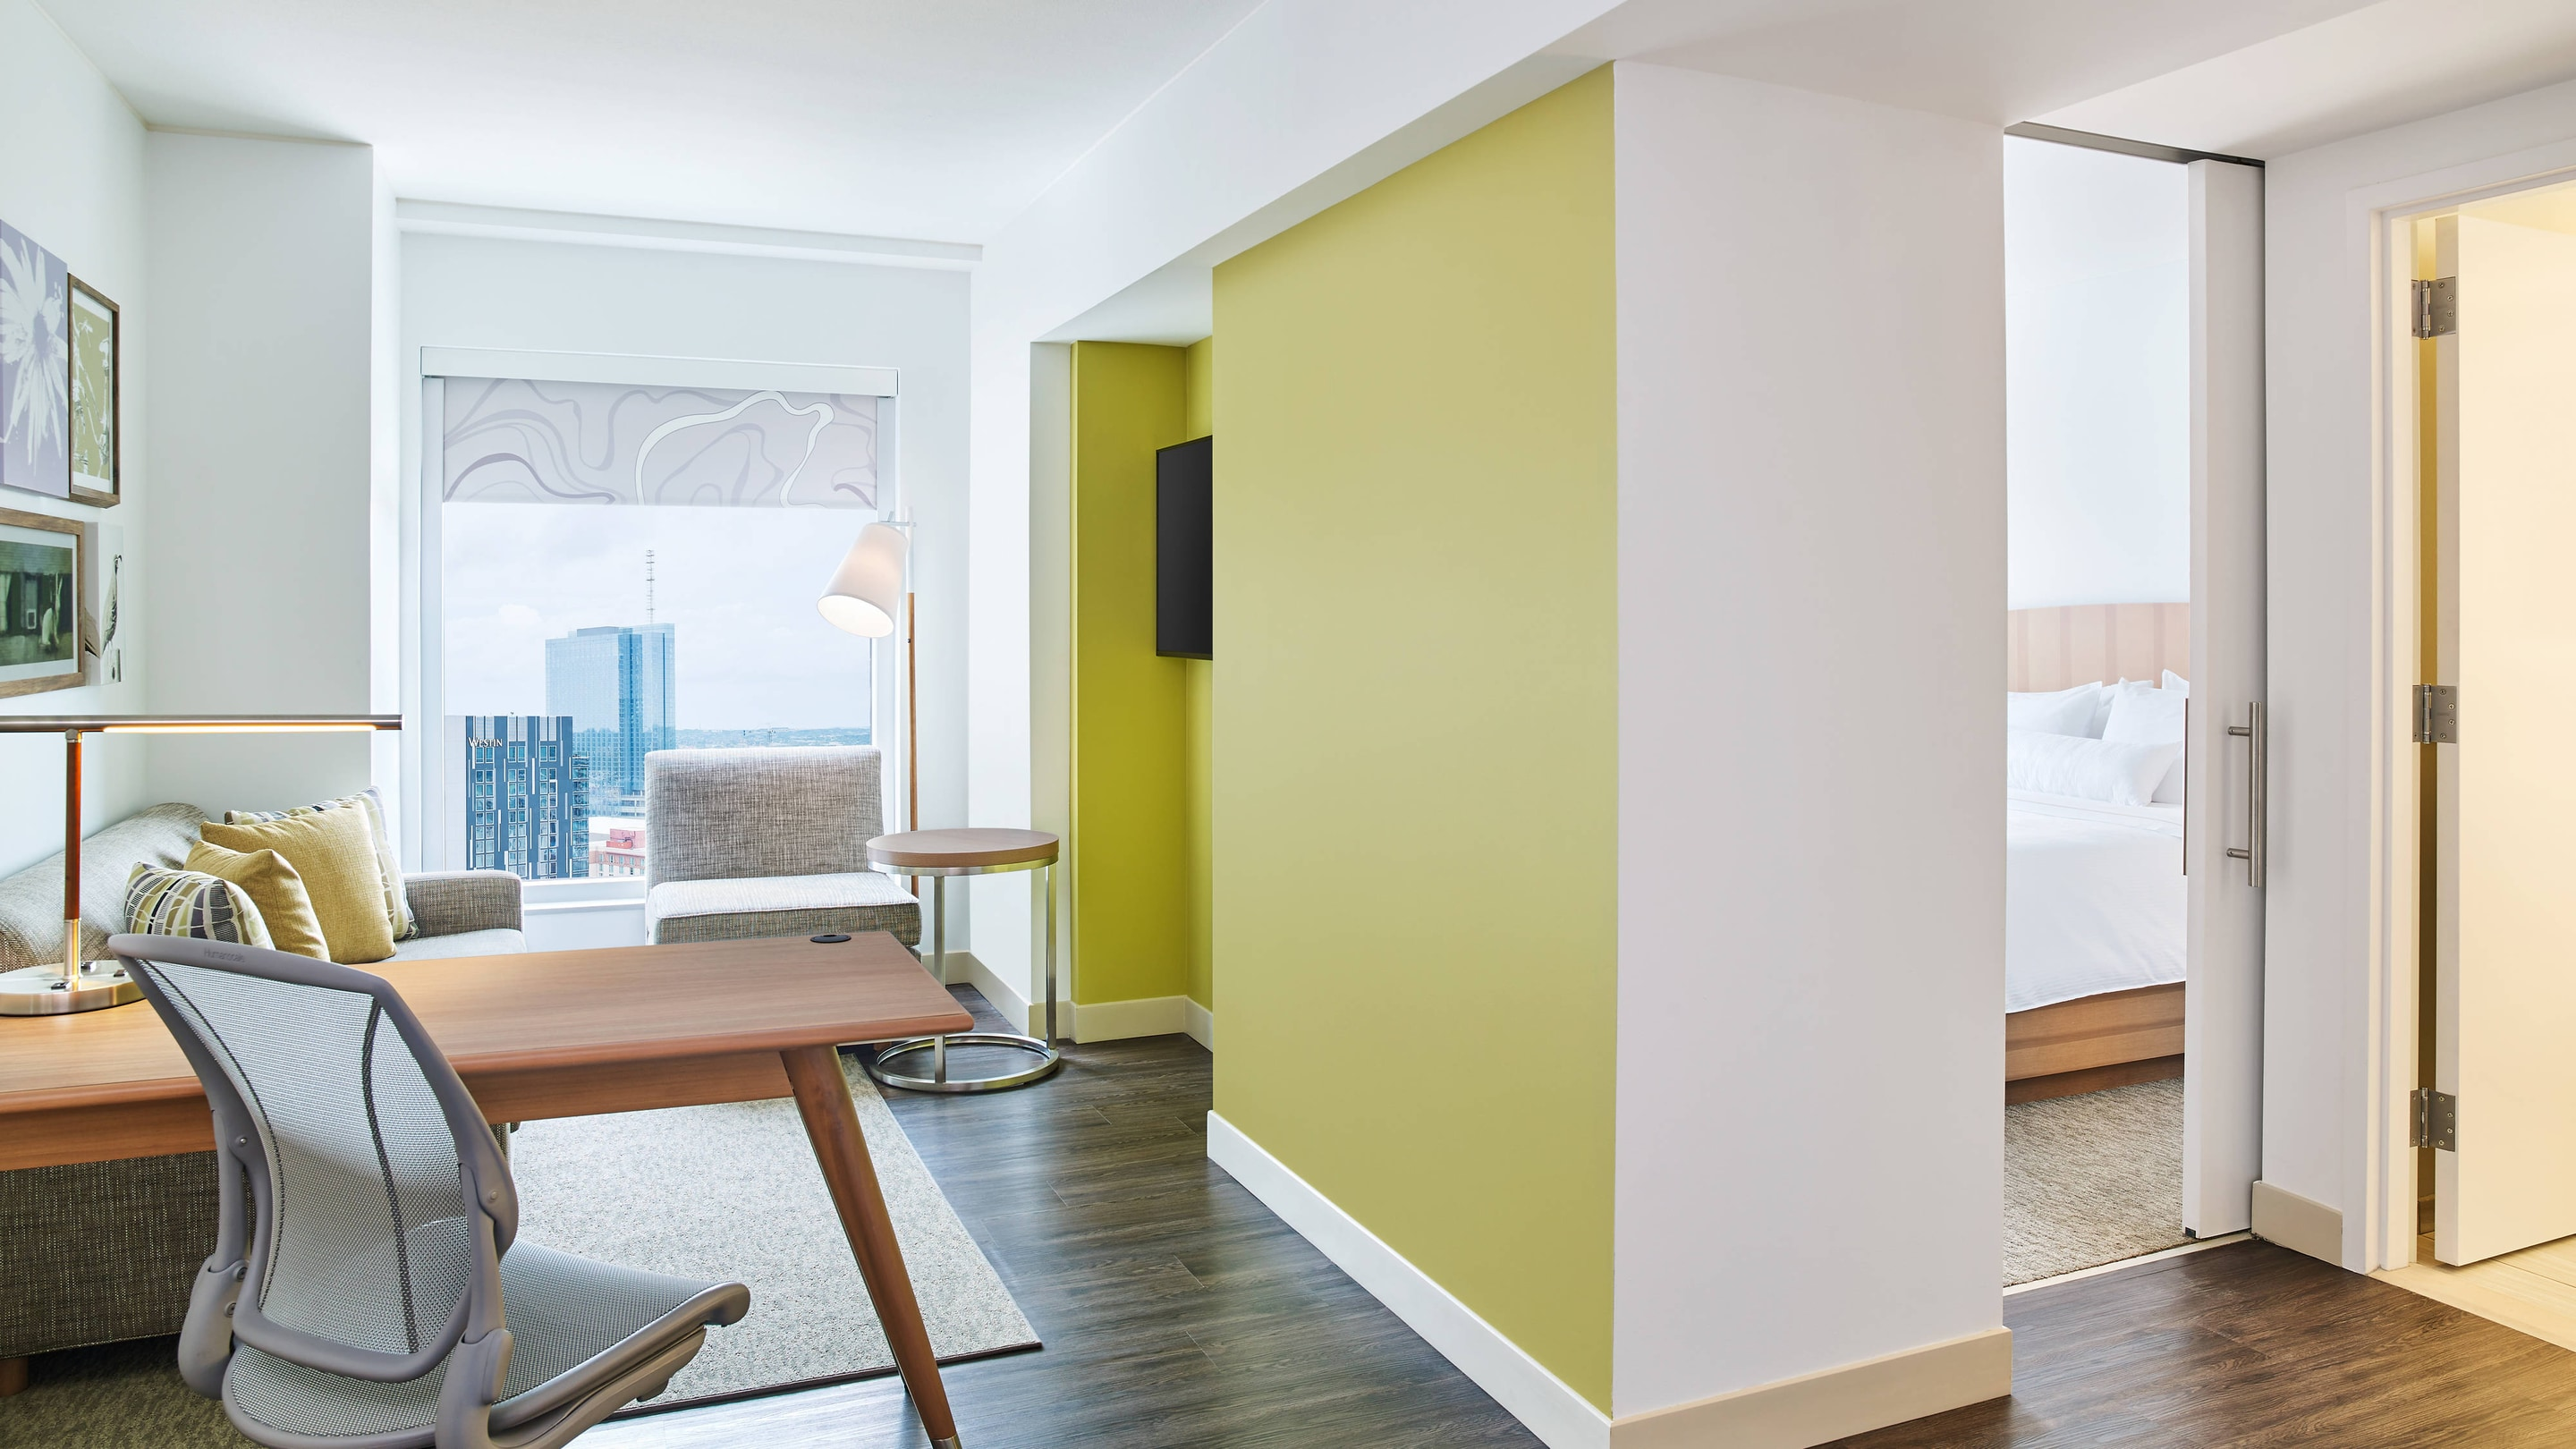 Guestroom featuring workdesk and yellow wall with hallway